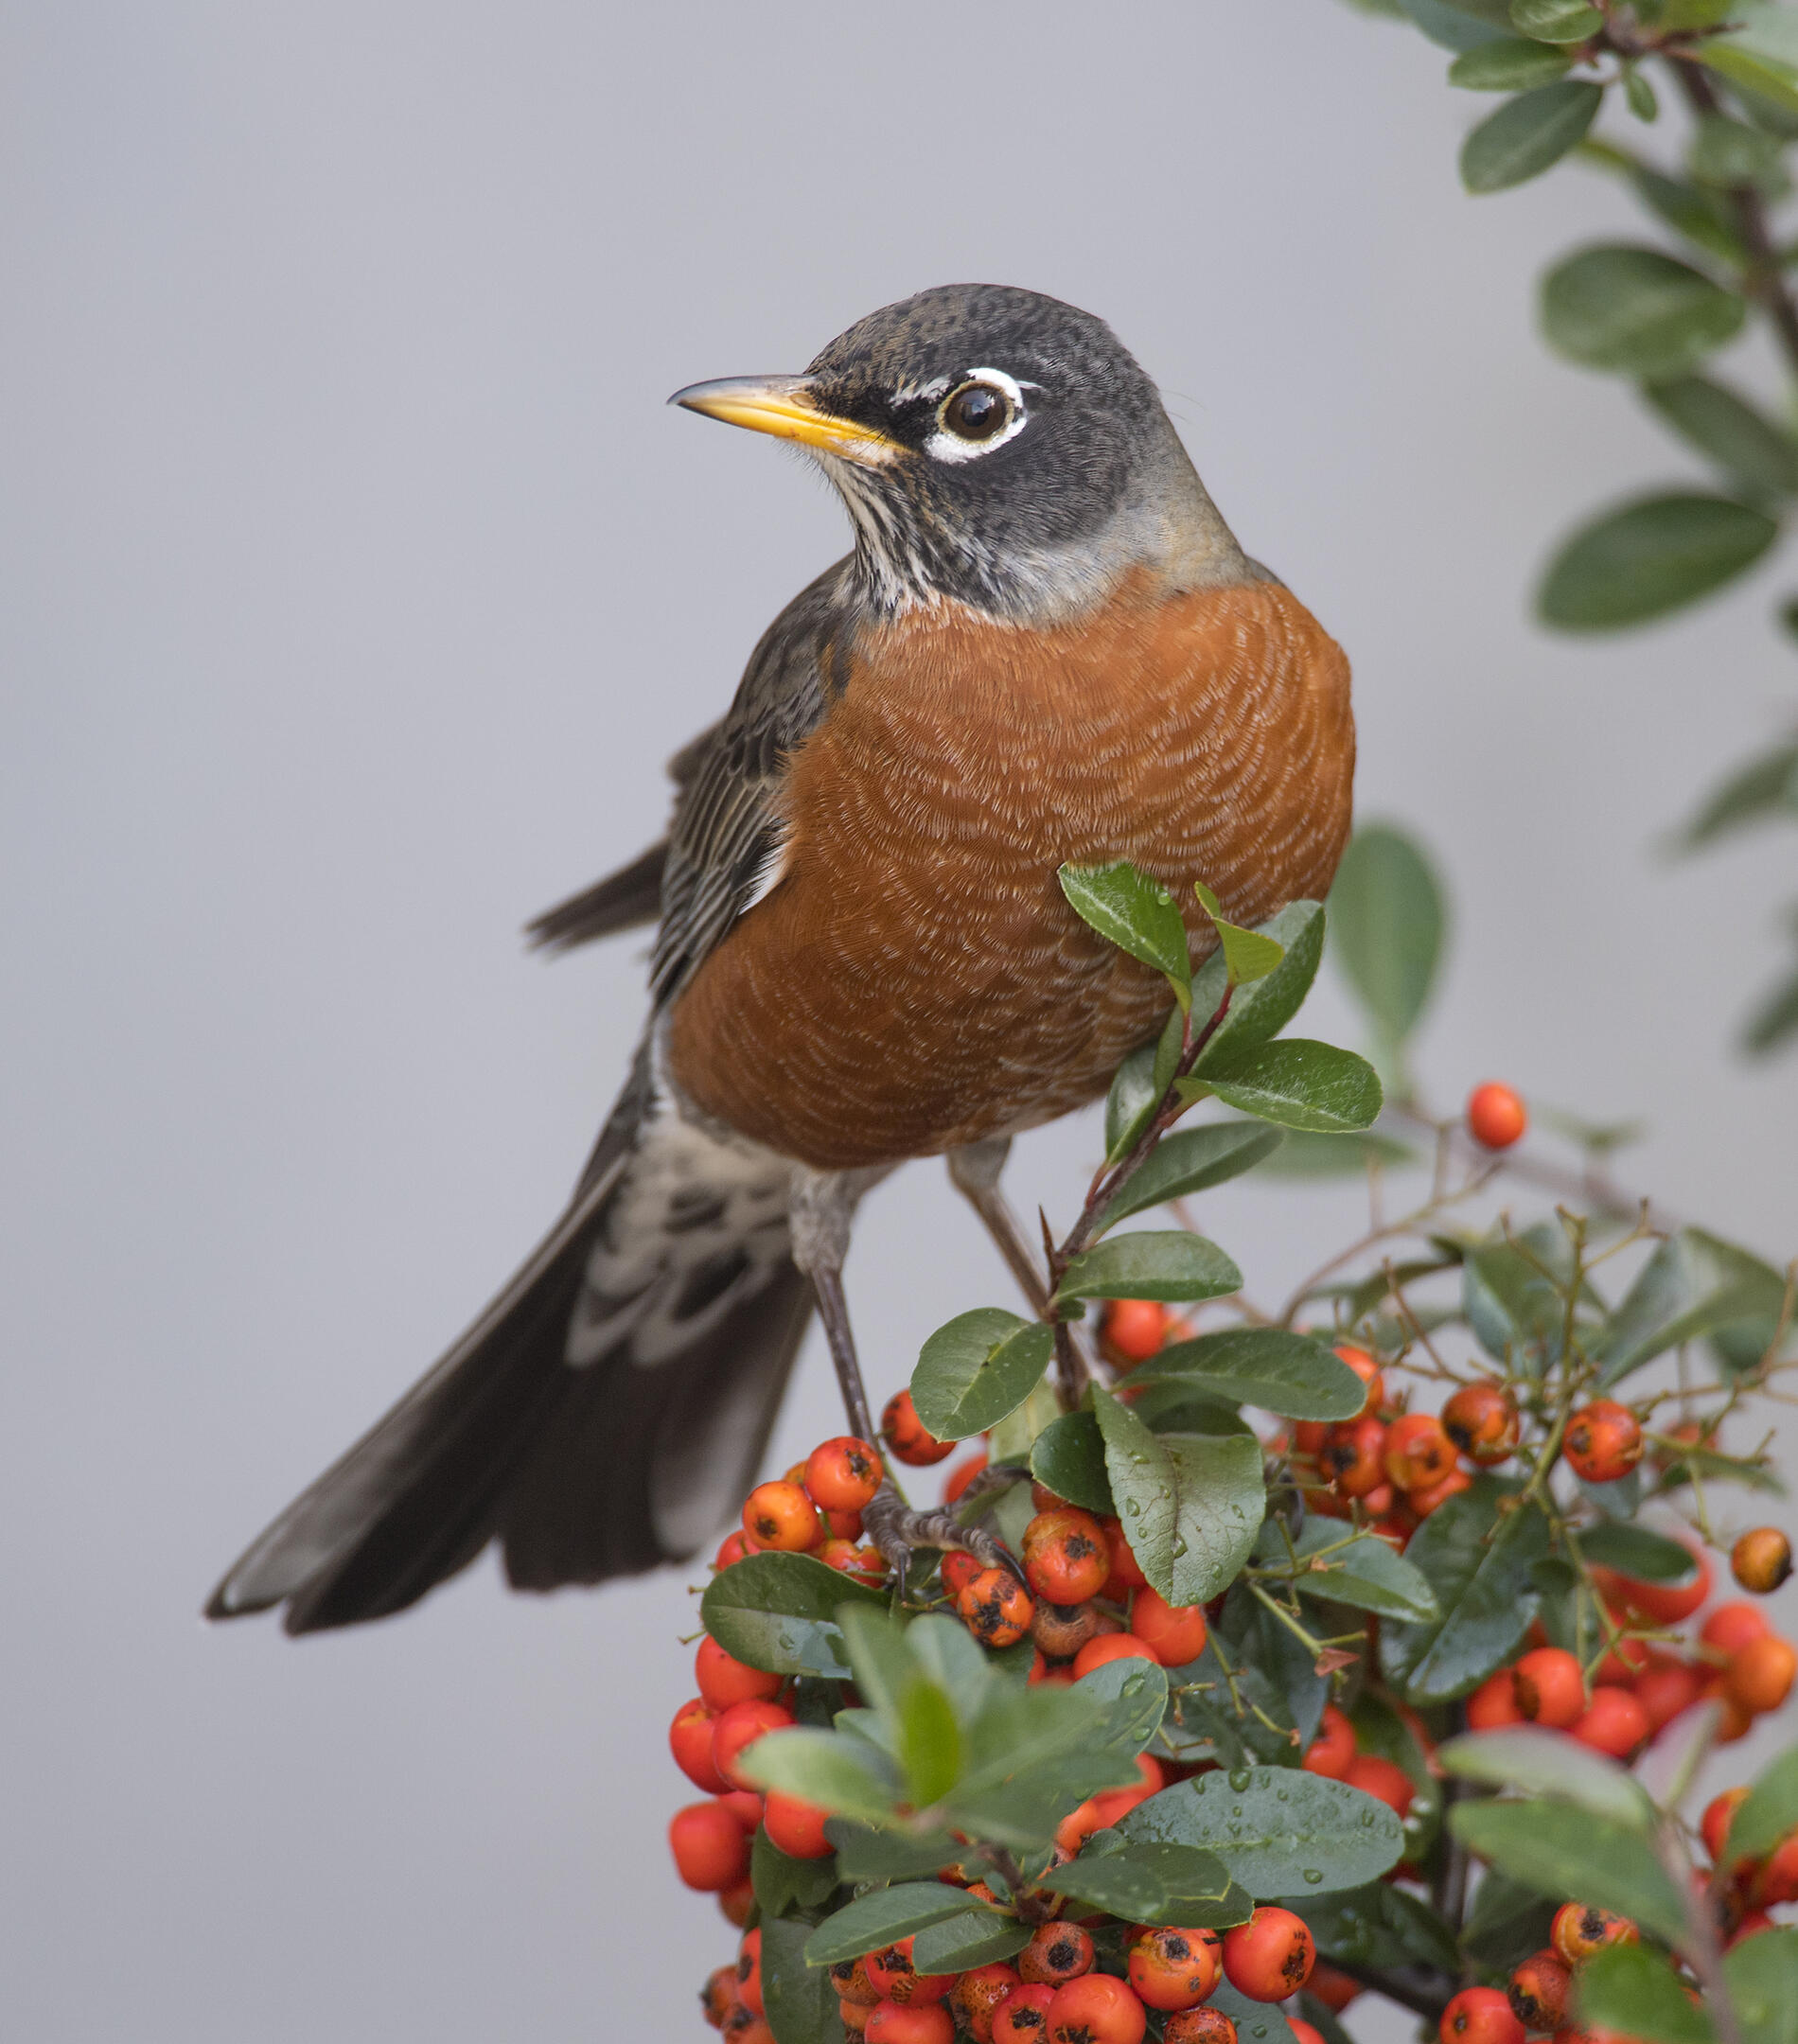 Food of and adult robin